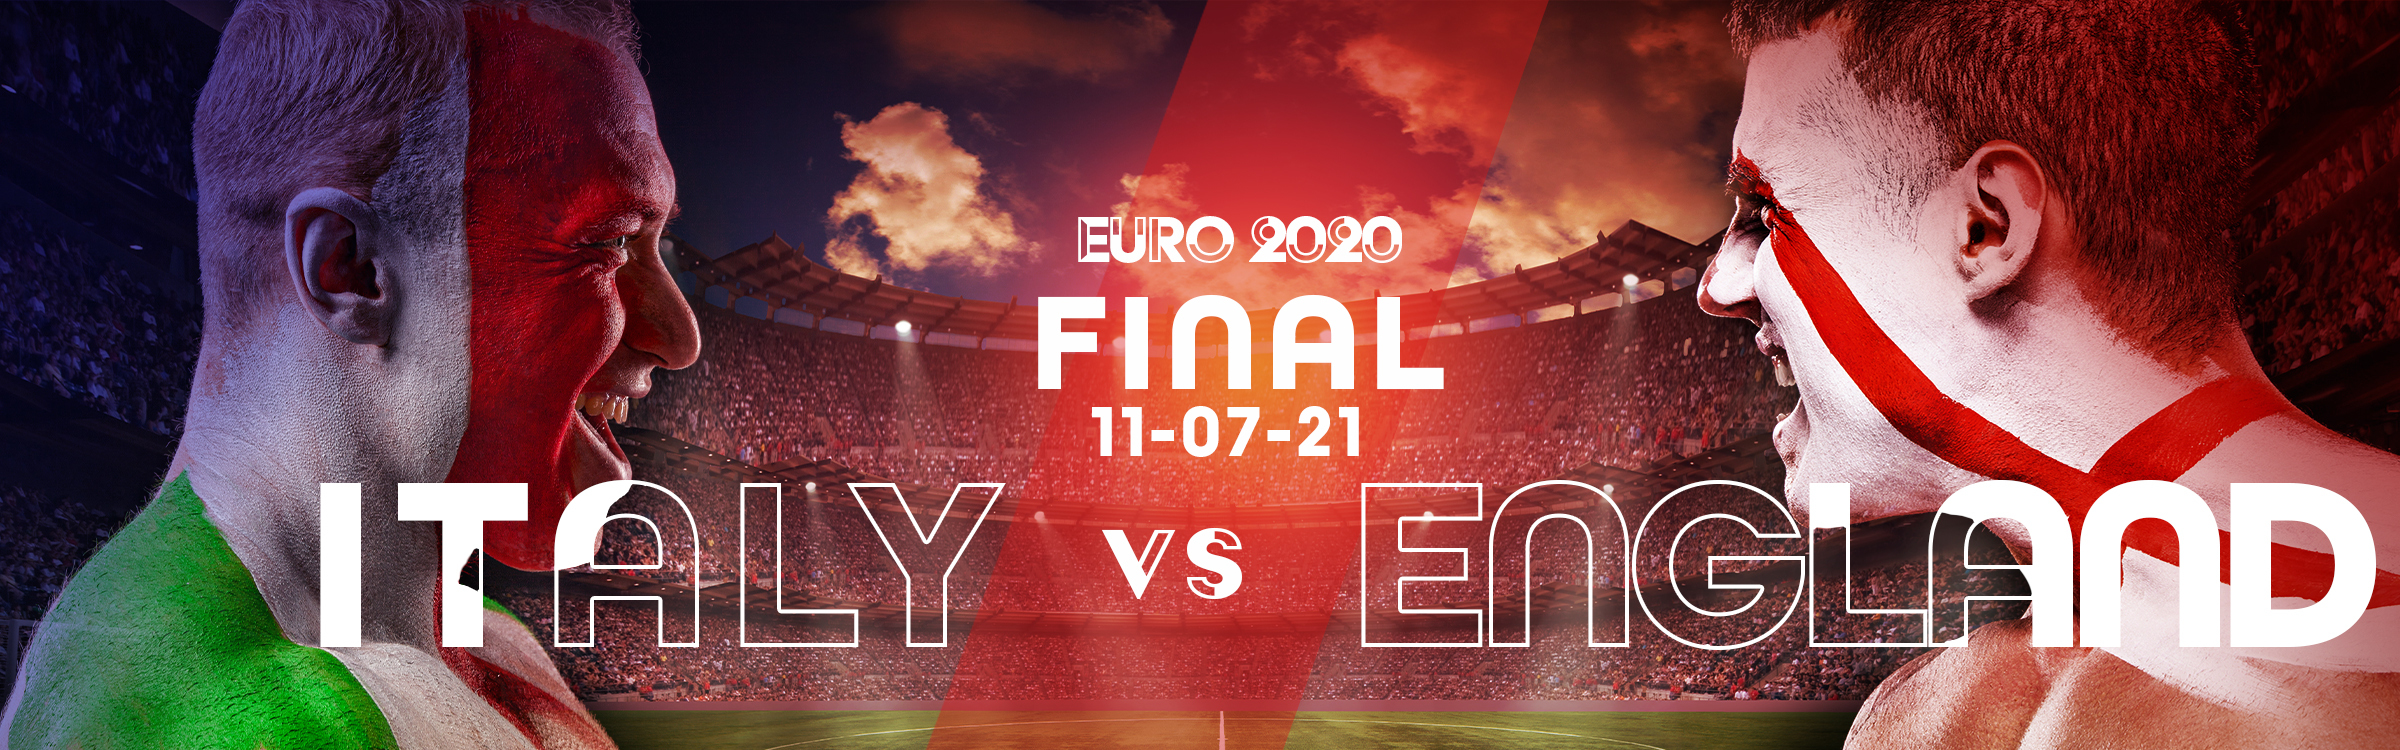 Euro 2020 Final Odds Italy vs England - Who Will Win It?